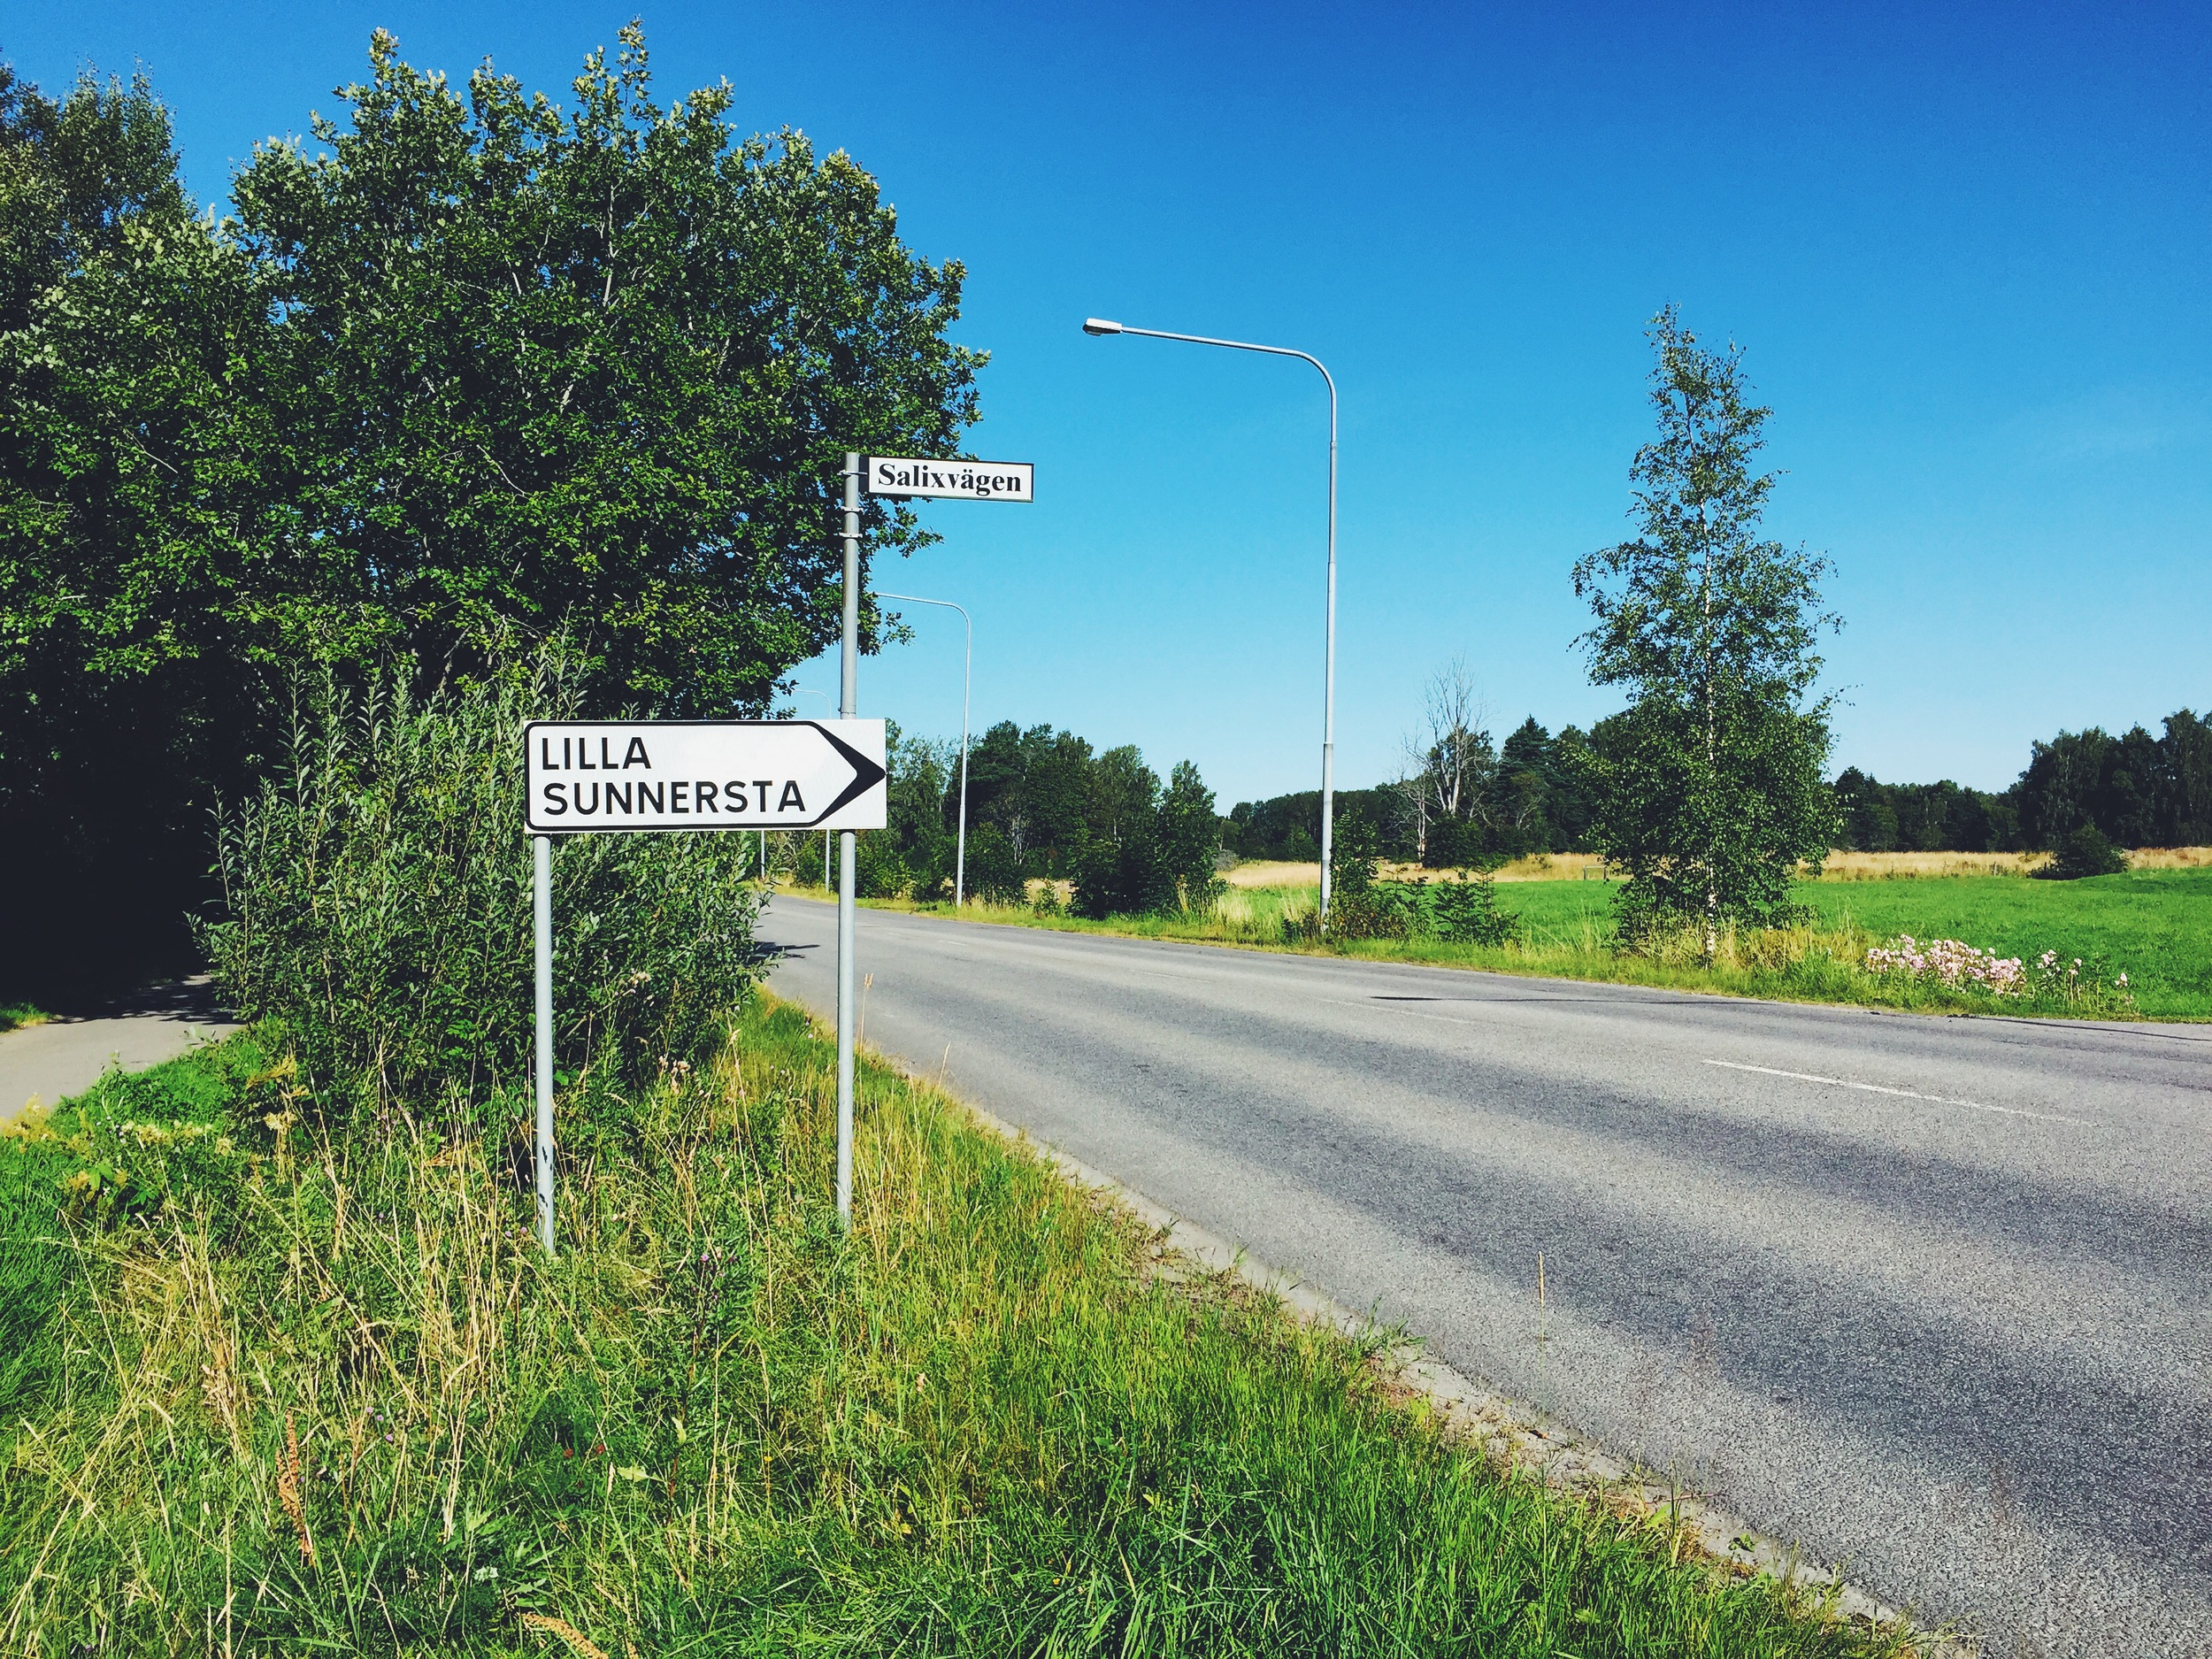 The sign that points to my new temporary home in Uppsala.